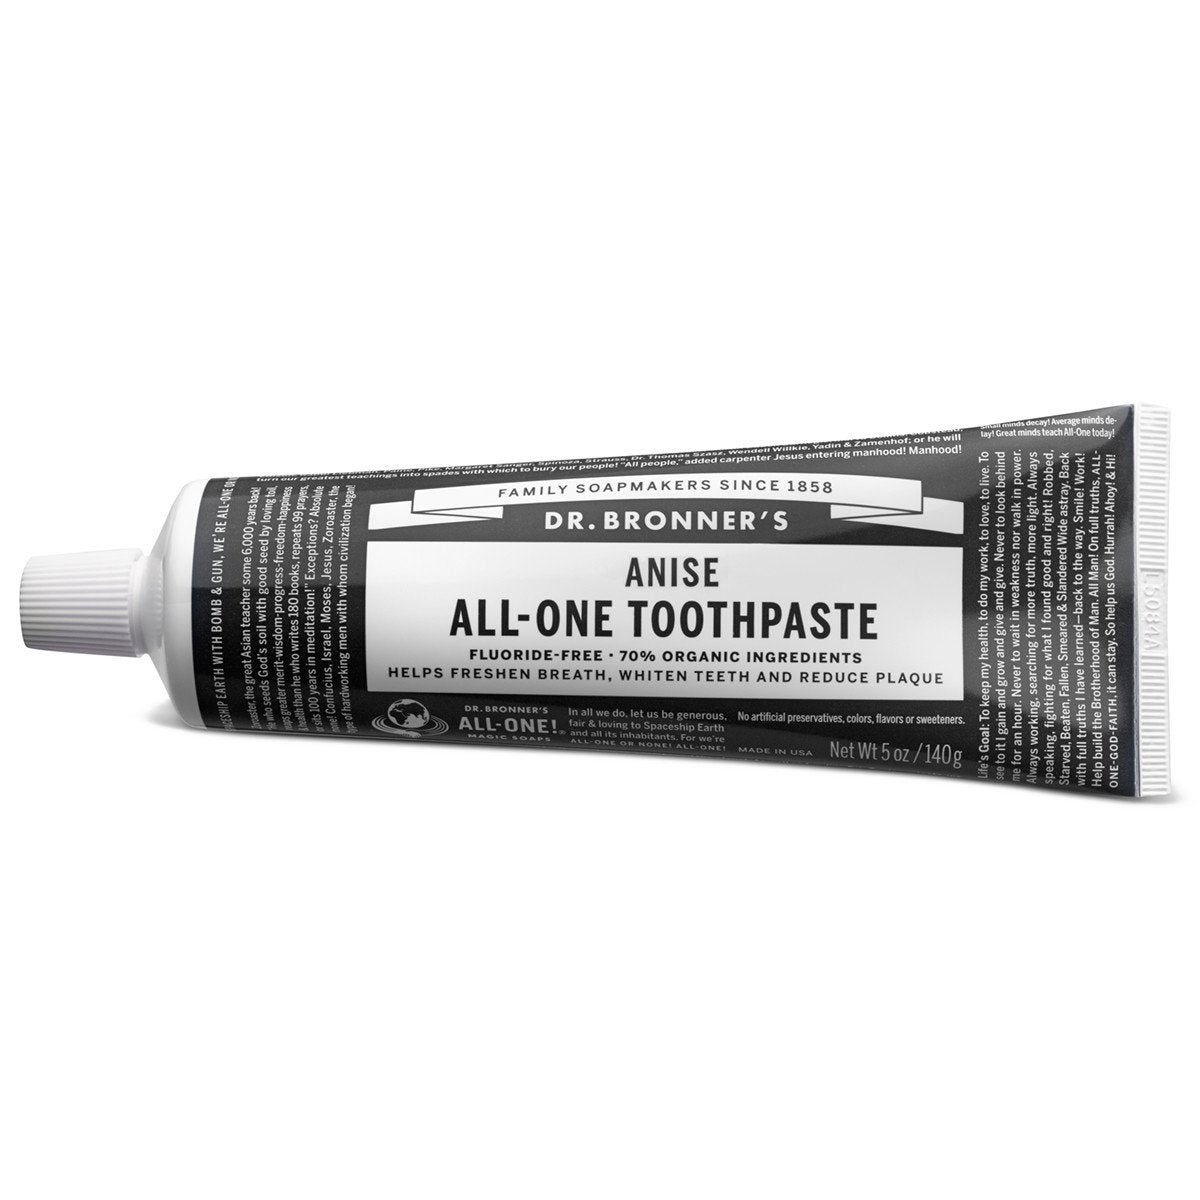 Supplements & Vitamins - Dr. Bronner's - Star Anise Toothpaste, 140g